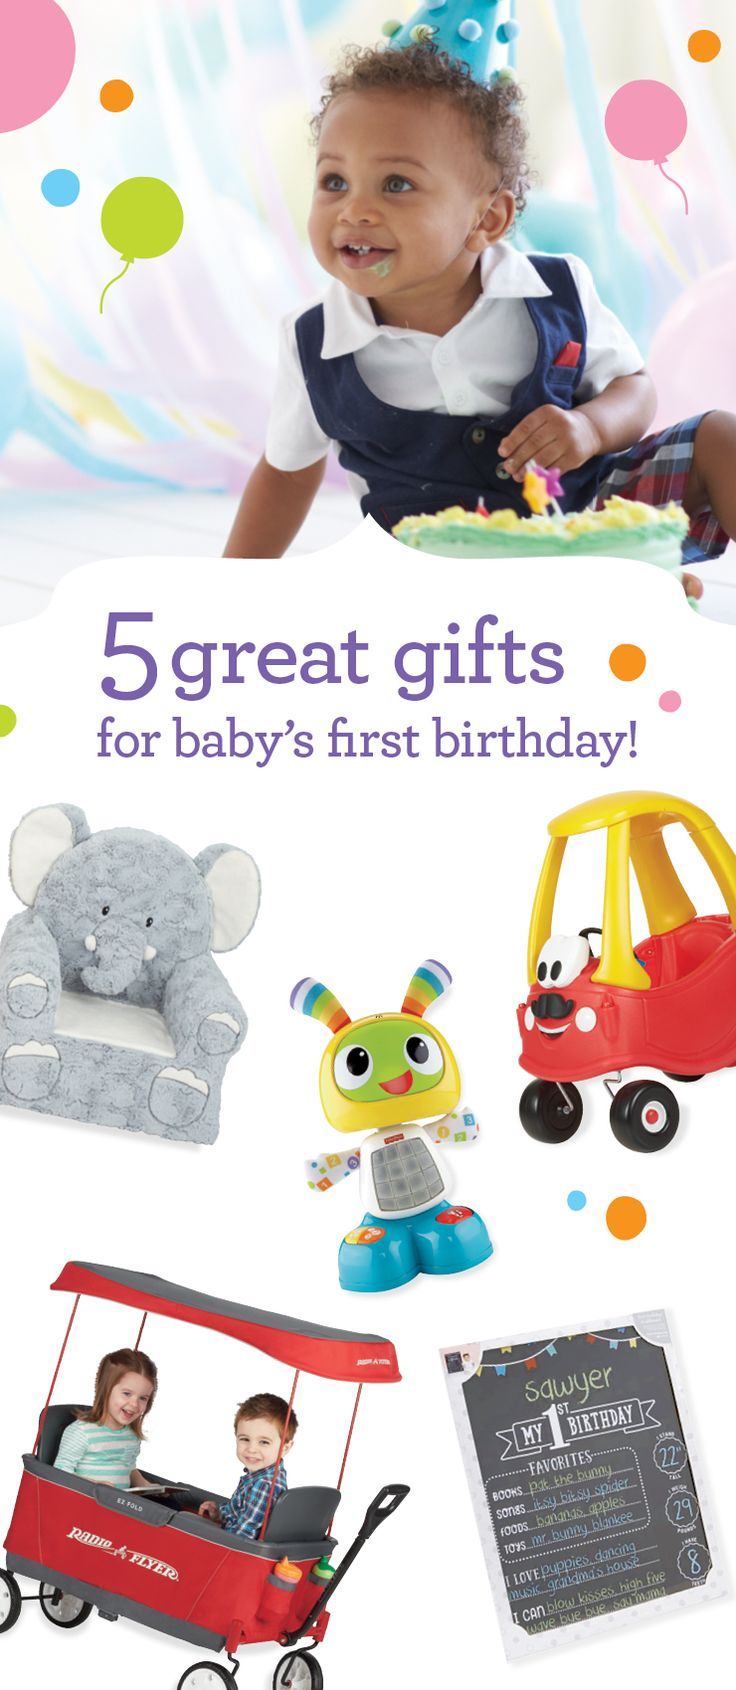 Cool Toys For First Birthday : Best images about baby s first birthday on pinterest